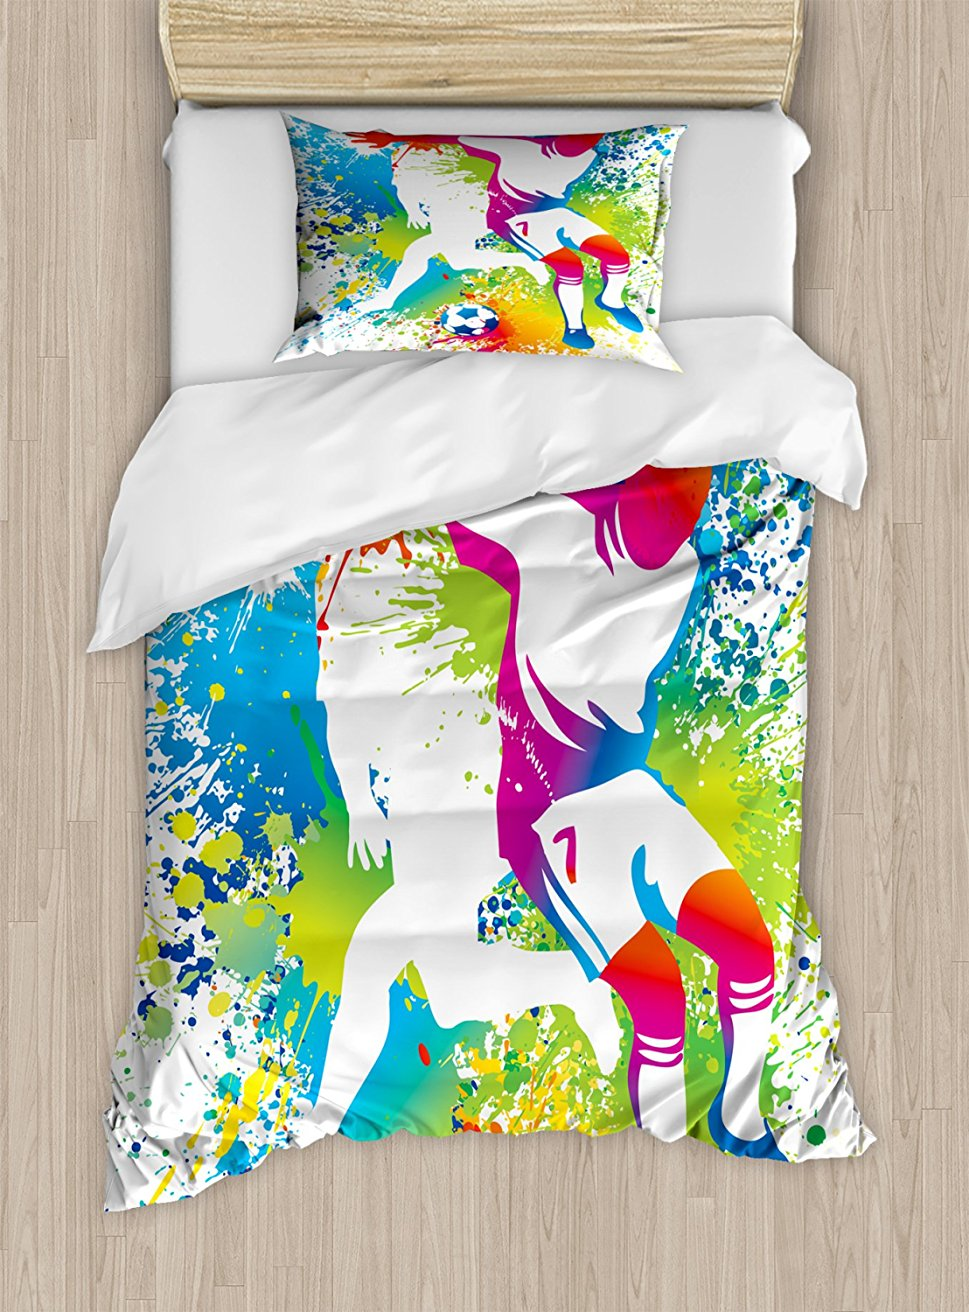 Youth Duvet Cover Set Football Players with a Soccer Ball and Colorful Grunge Splashes Competition Sports 4 Piece Bedding Set